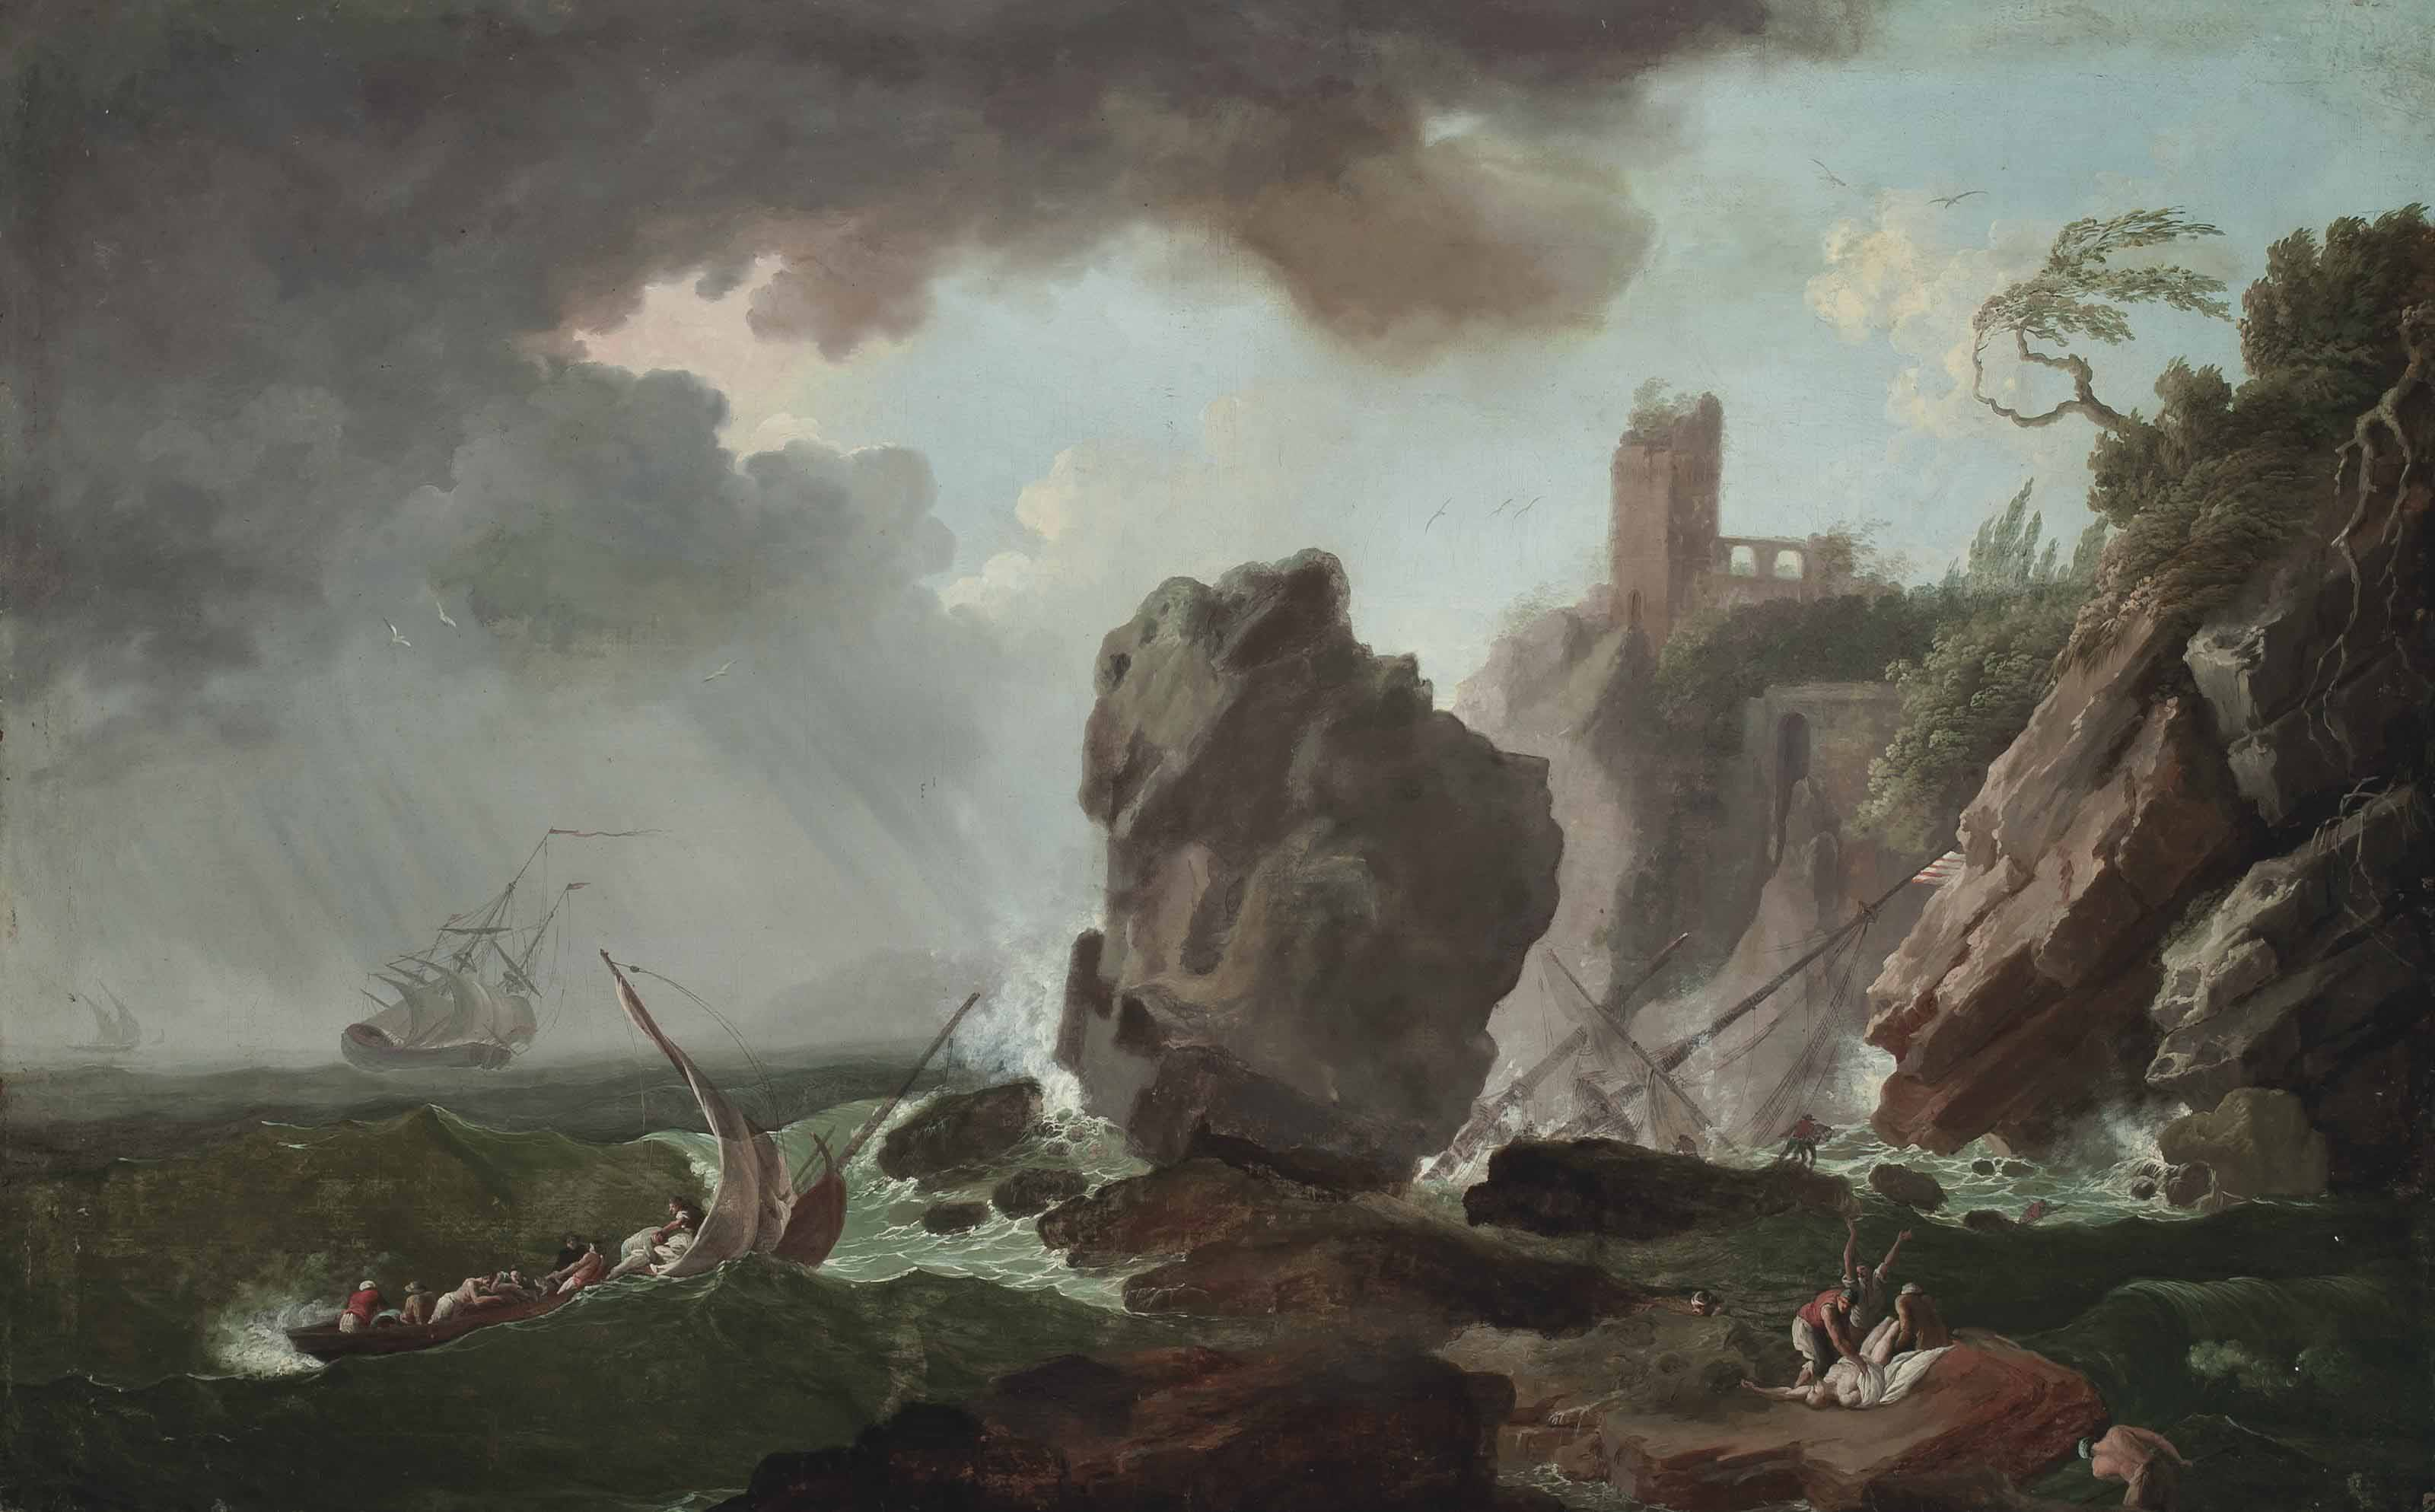 A stormy coastal landscape with a shipwreck